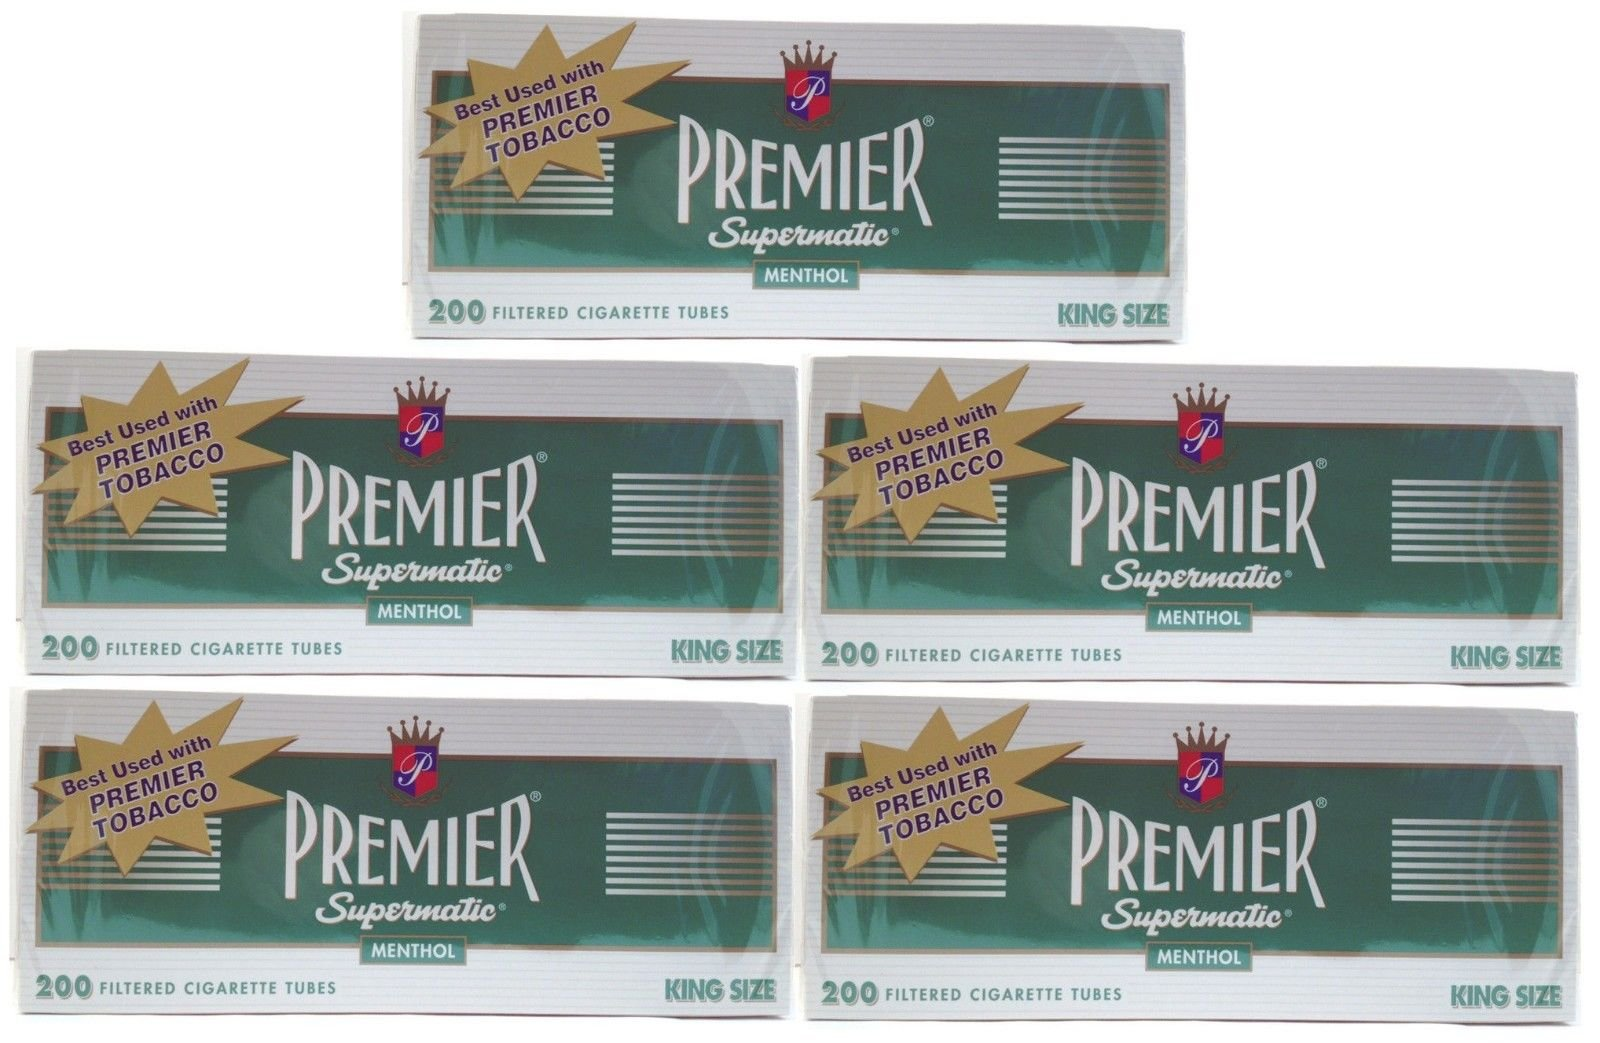 (5) Five Boxes of Premier Menthol - King Size Cigarette Tubes